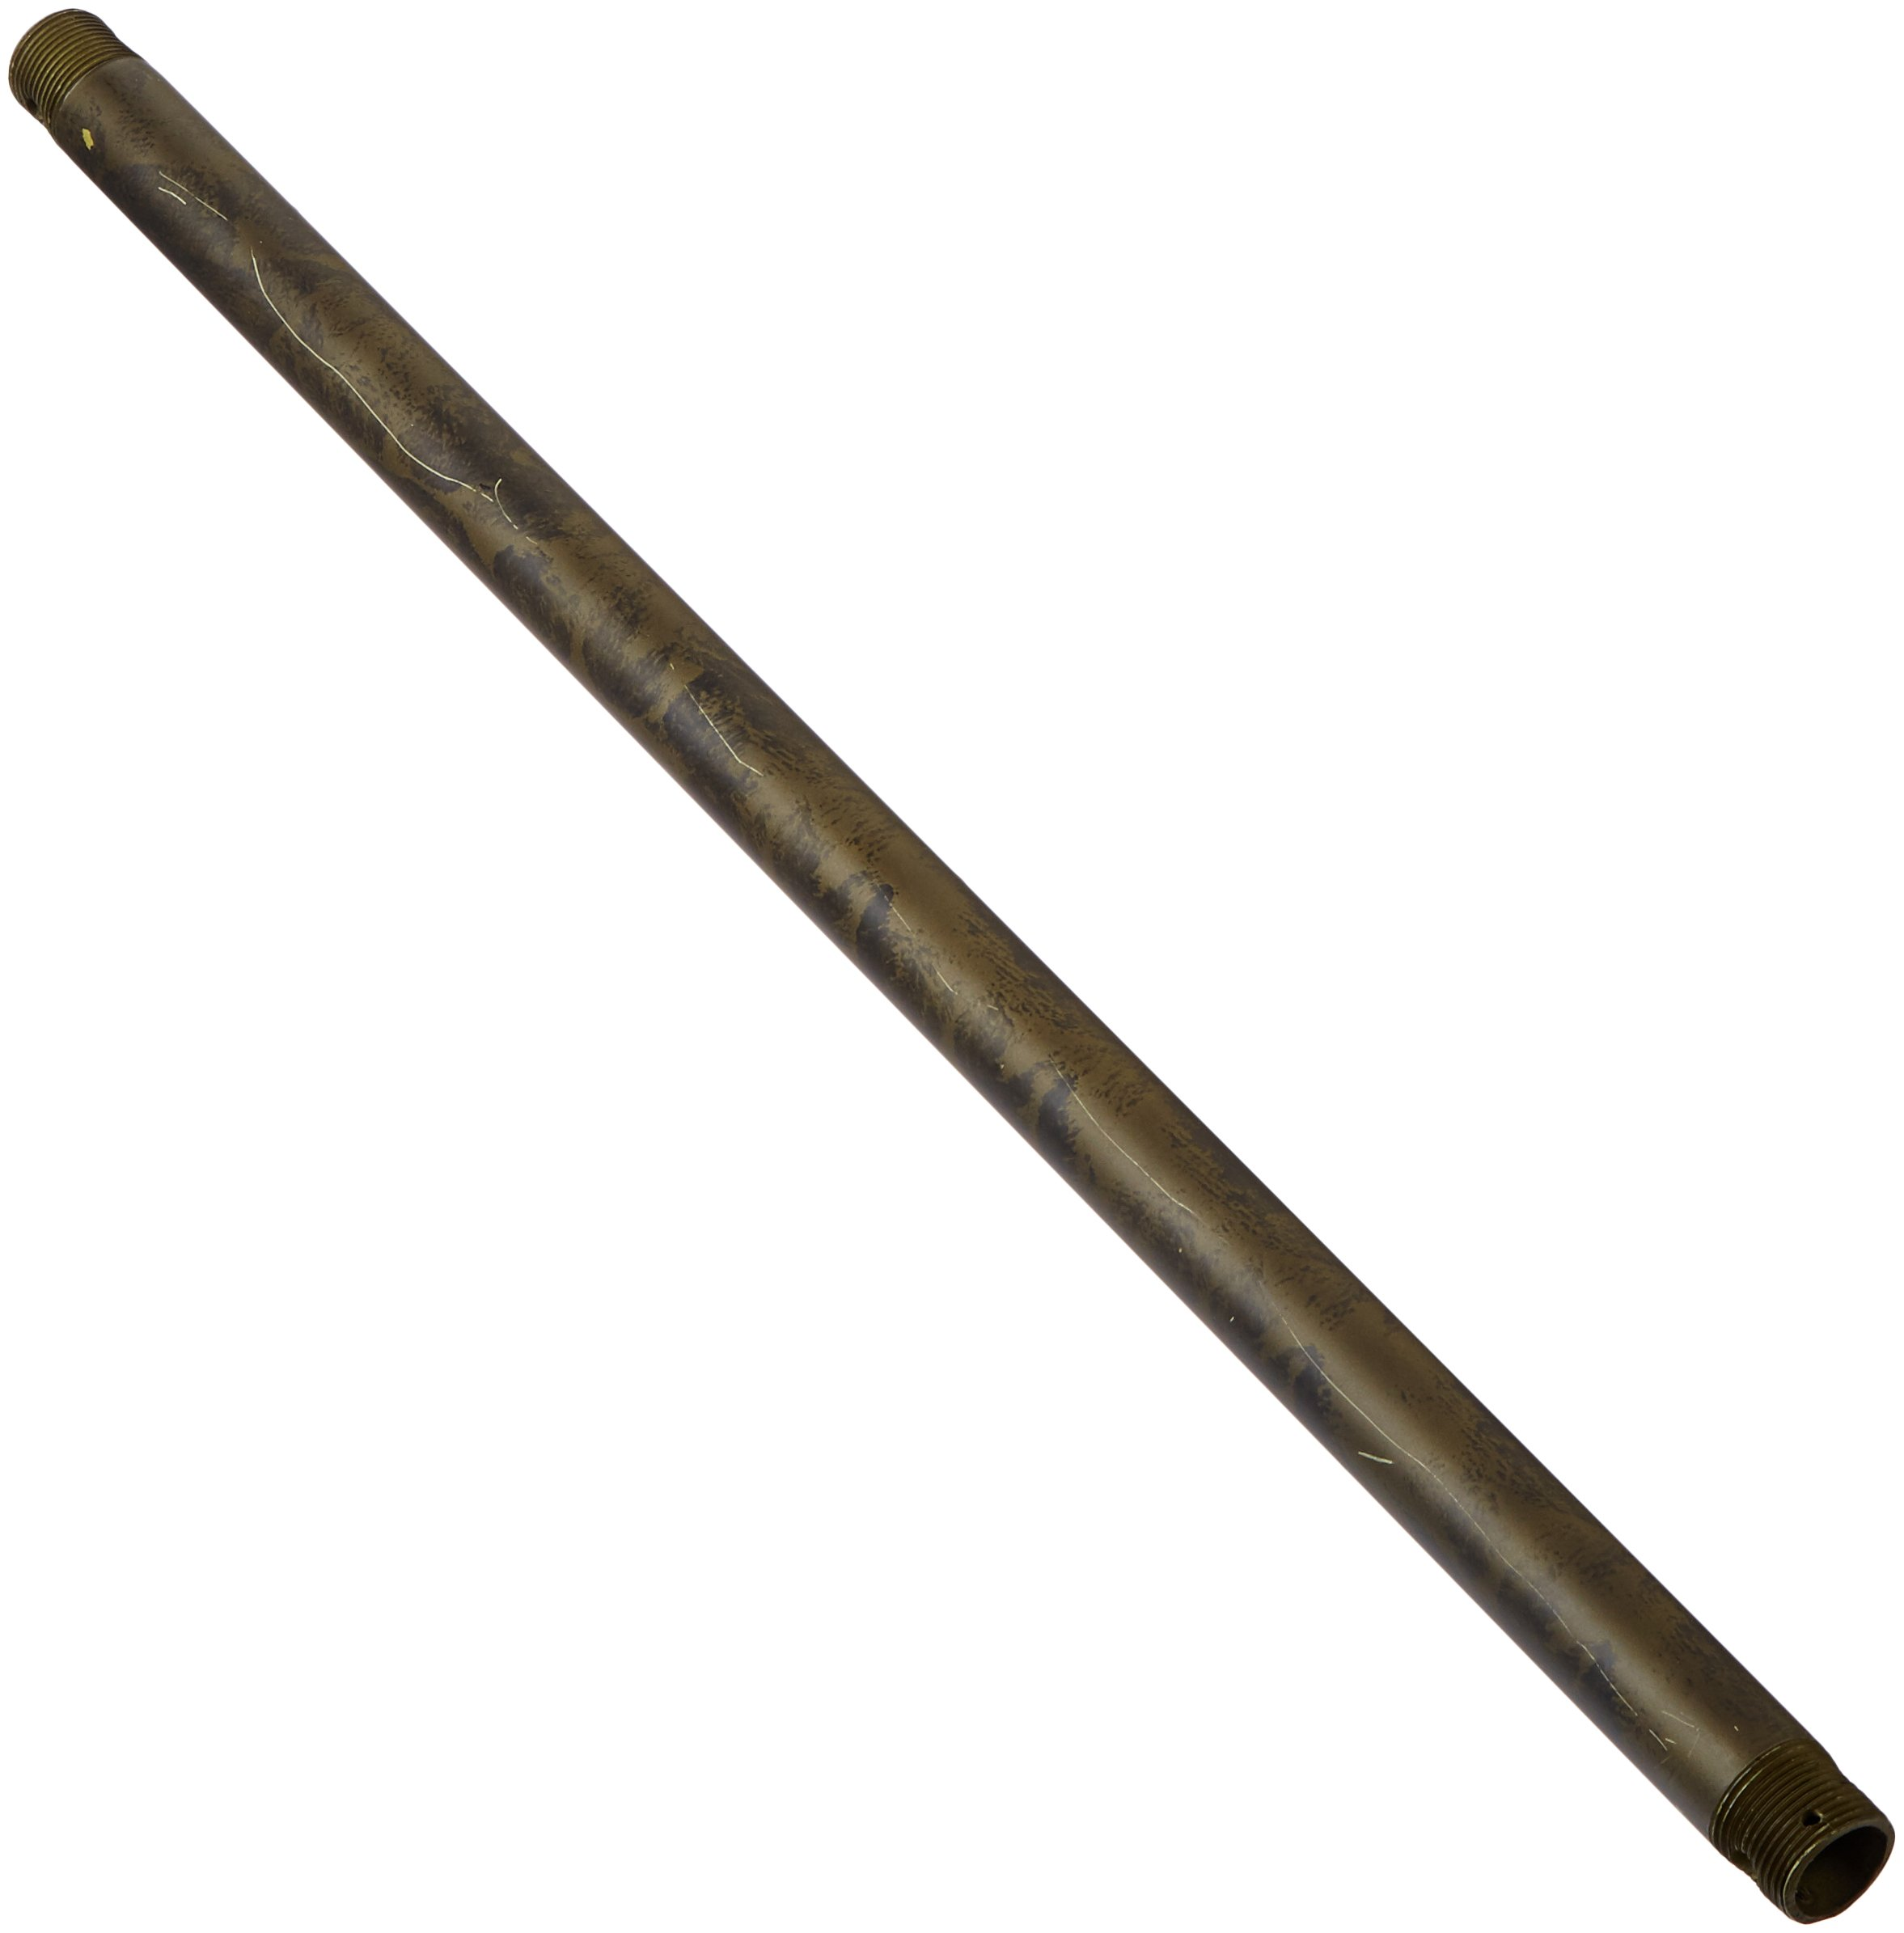 Westinghouse 6568200 3/4-Inch ID by 24-Inch Extension Down Rod, Oil Rubbed Bronze Finish